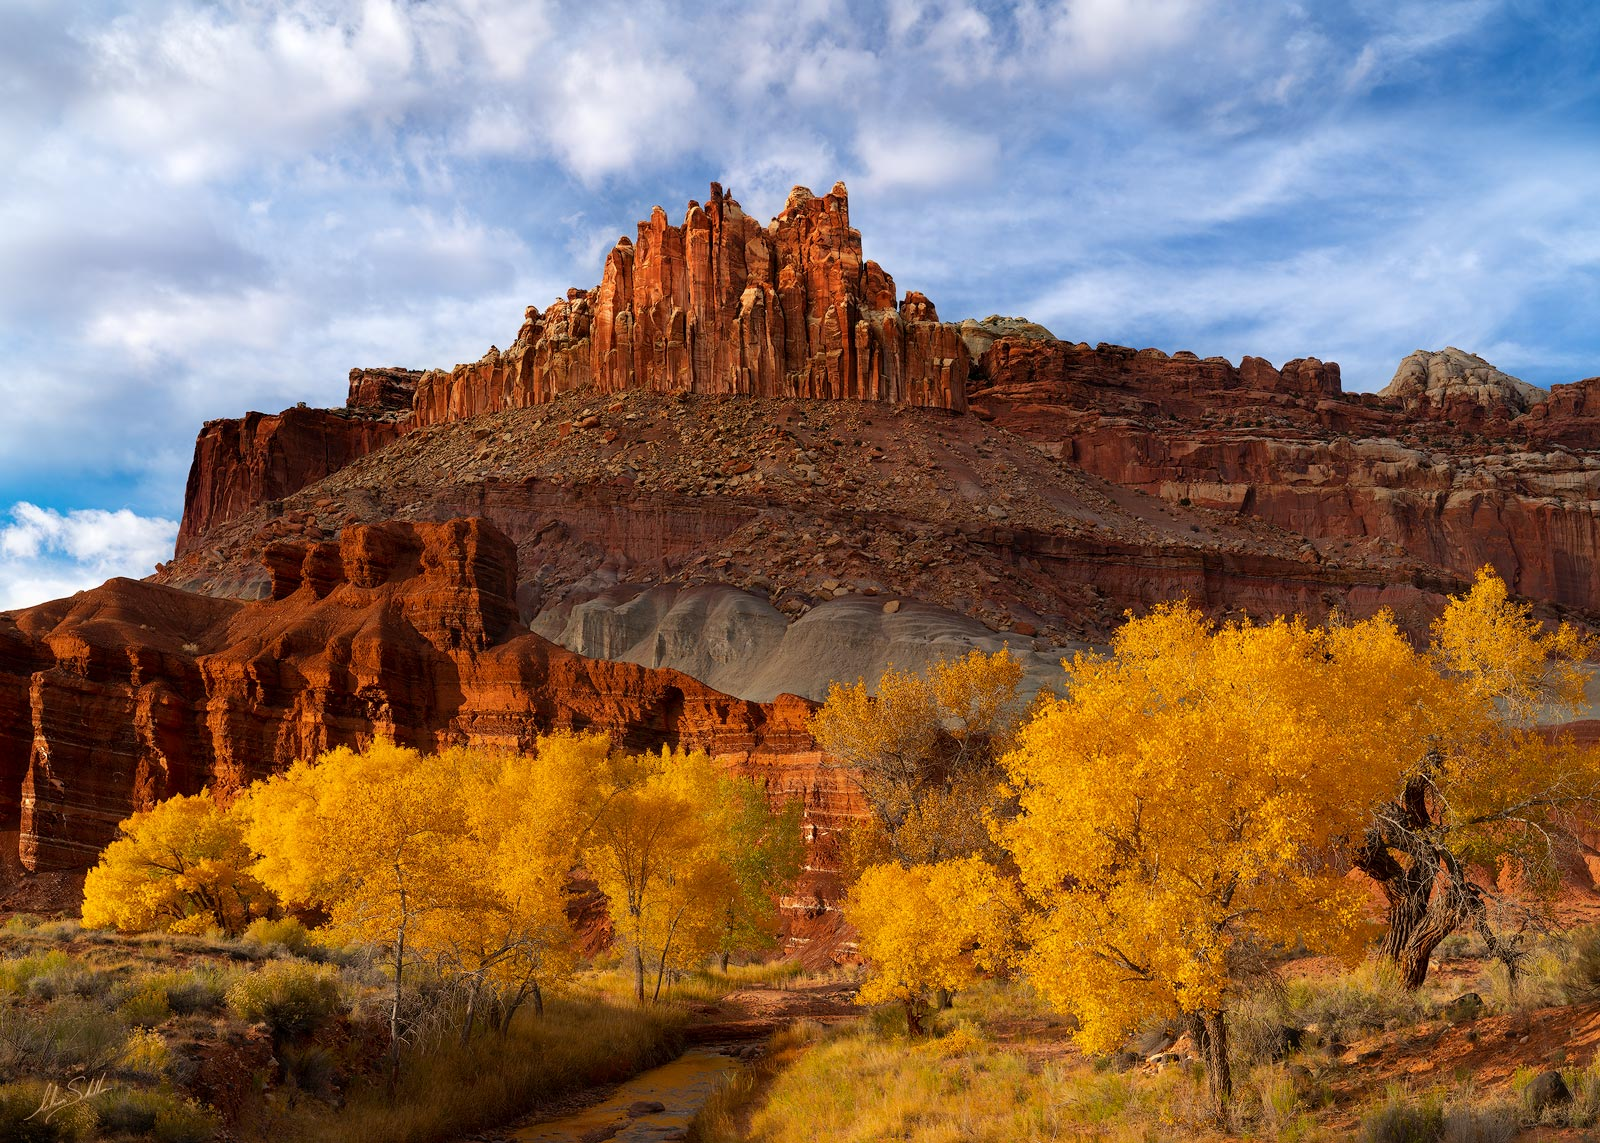 American Southwest, Autumn, Capitol Reef, Capitol Reef National Park, Colorado Plateau, Cottonwood, Desert, Fall, Fall Color, Fall Color in Utah, Fremont Cottonwood, National Park, Southwest, The Cast, photo